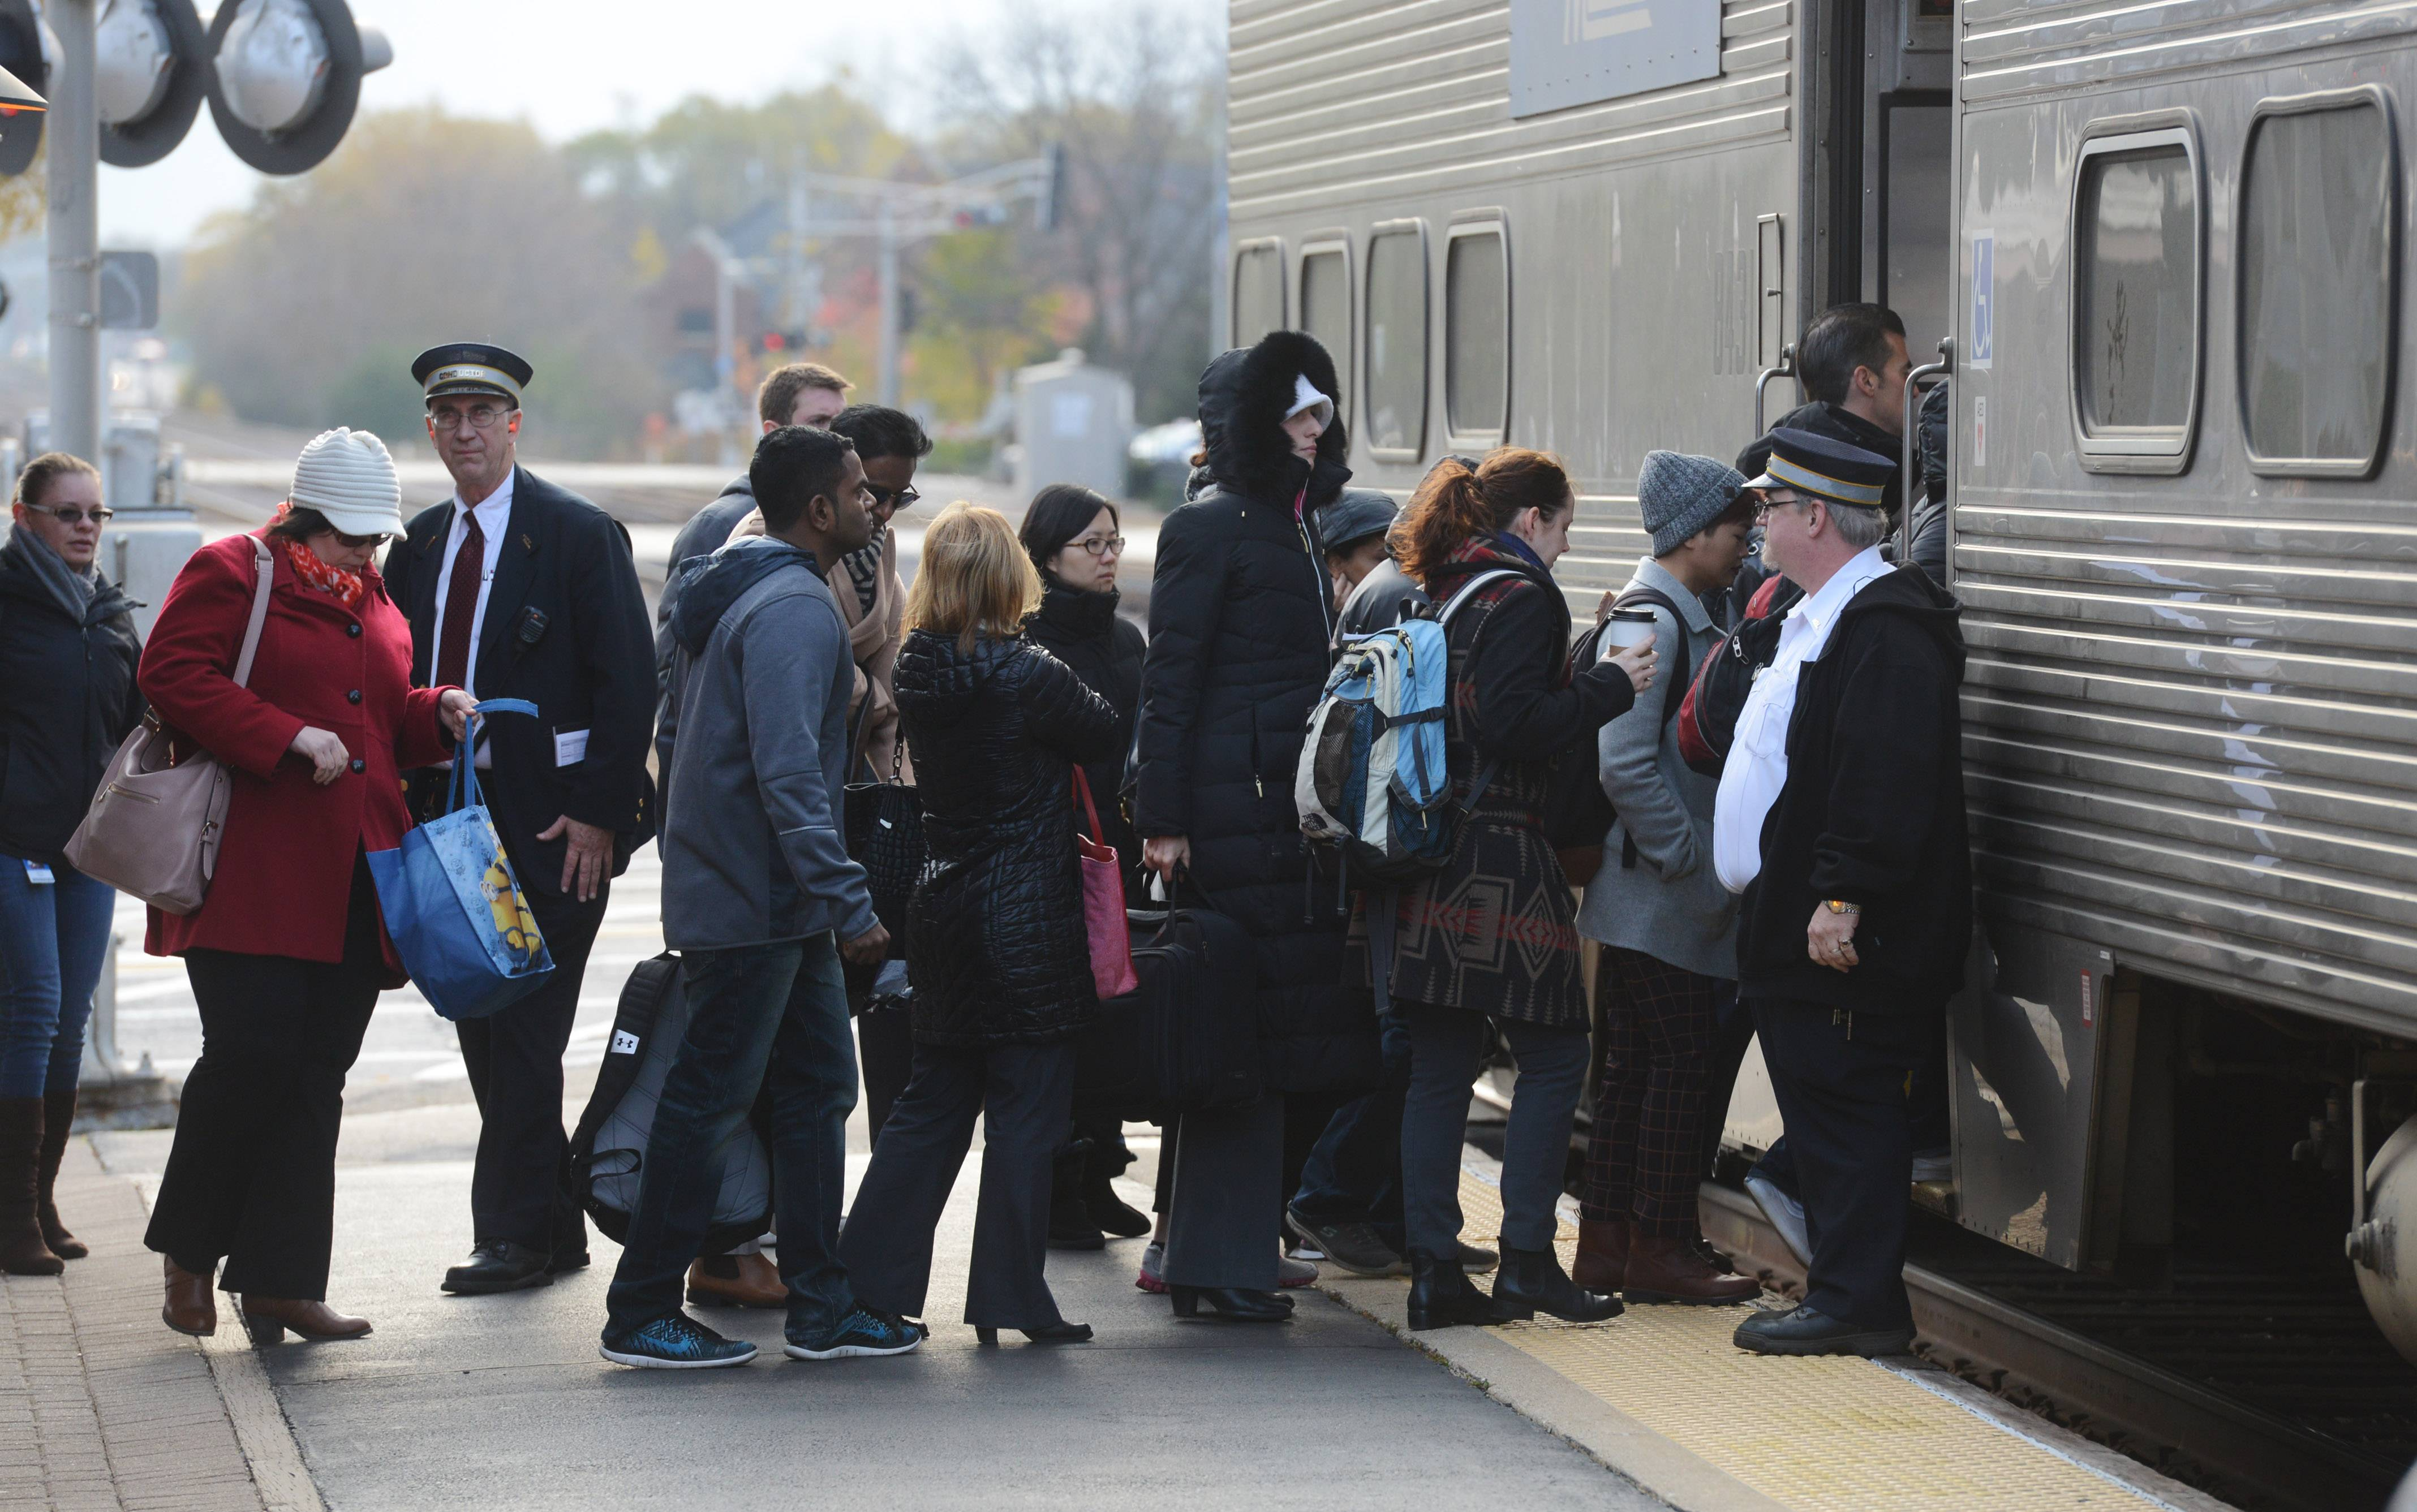 Riders wincing as Metra service cuts, fare hikes loom